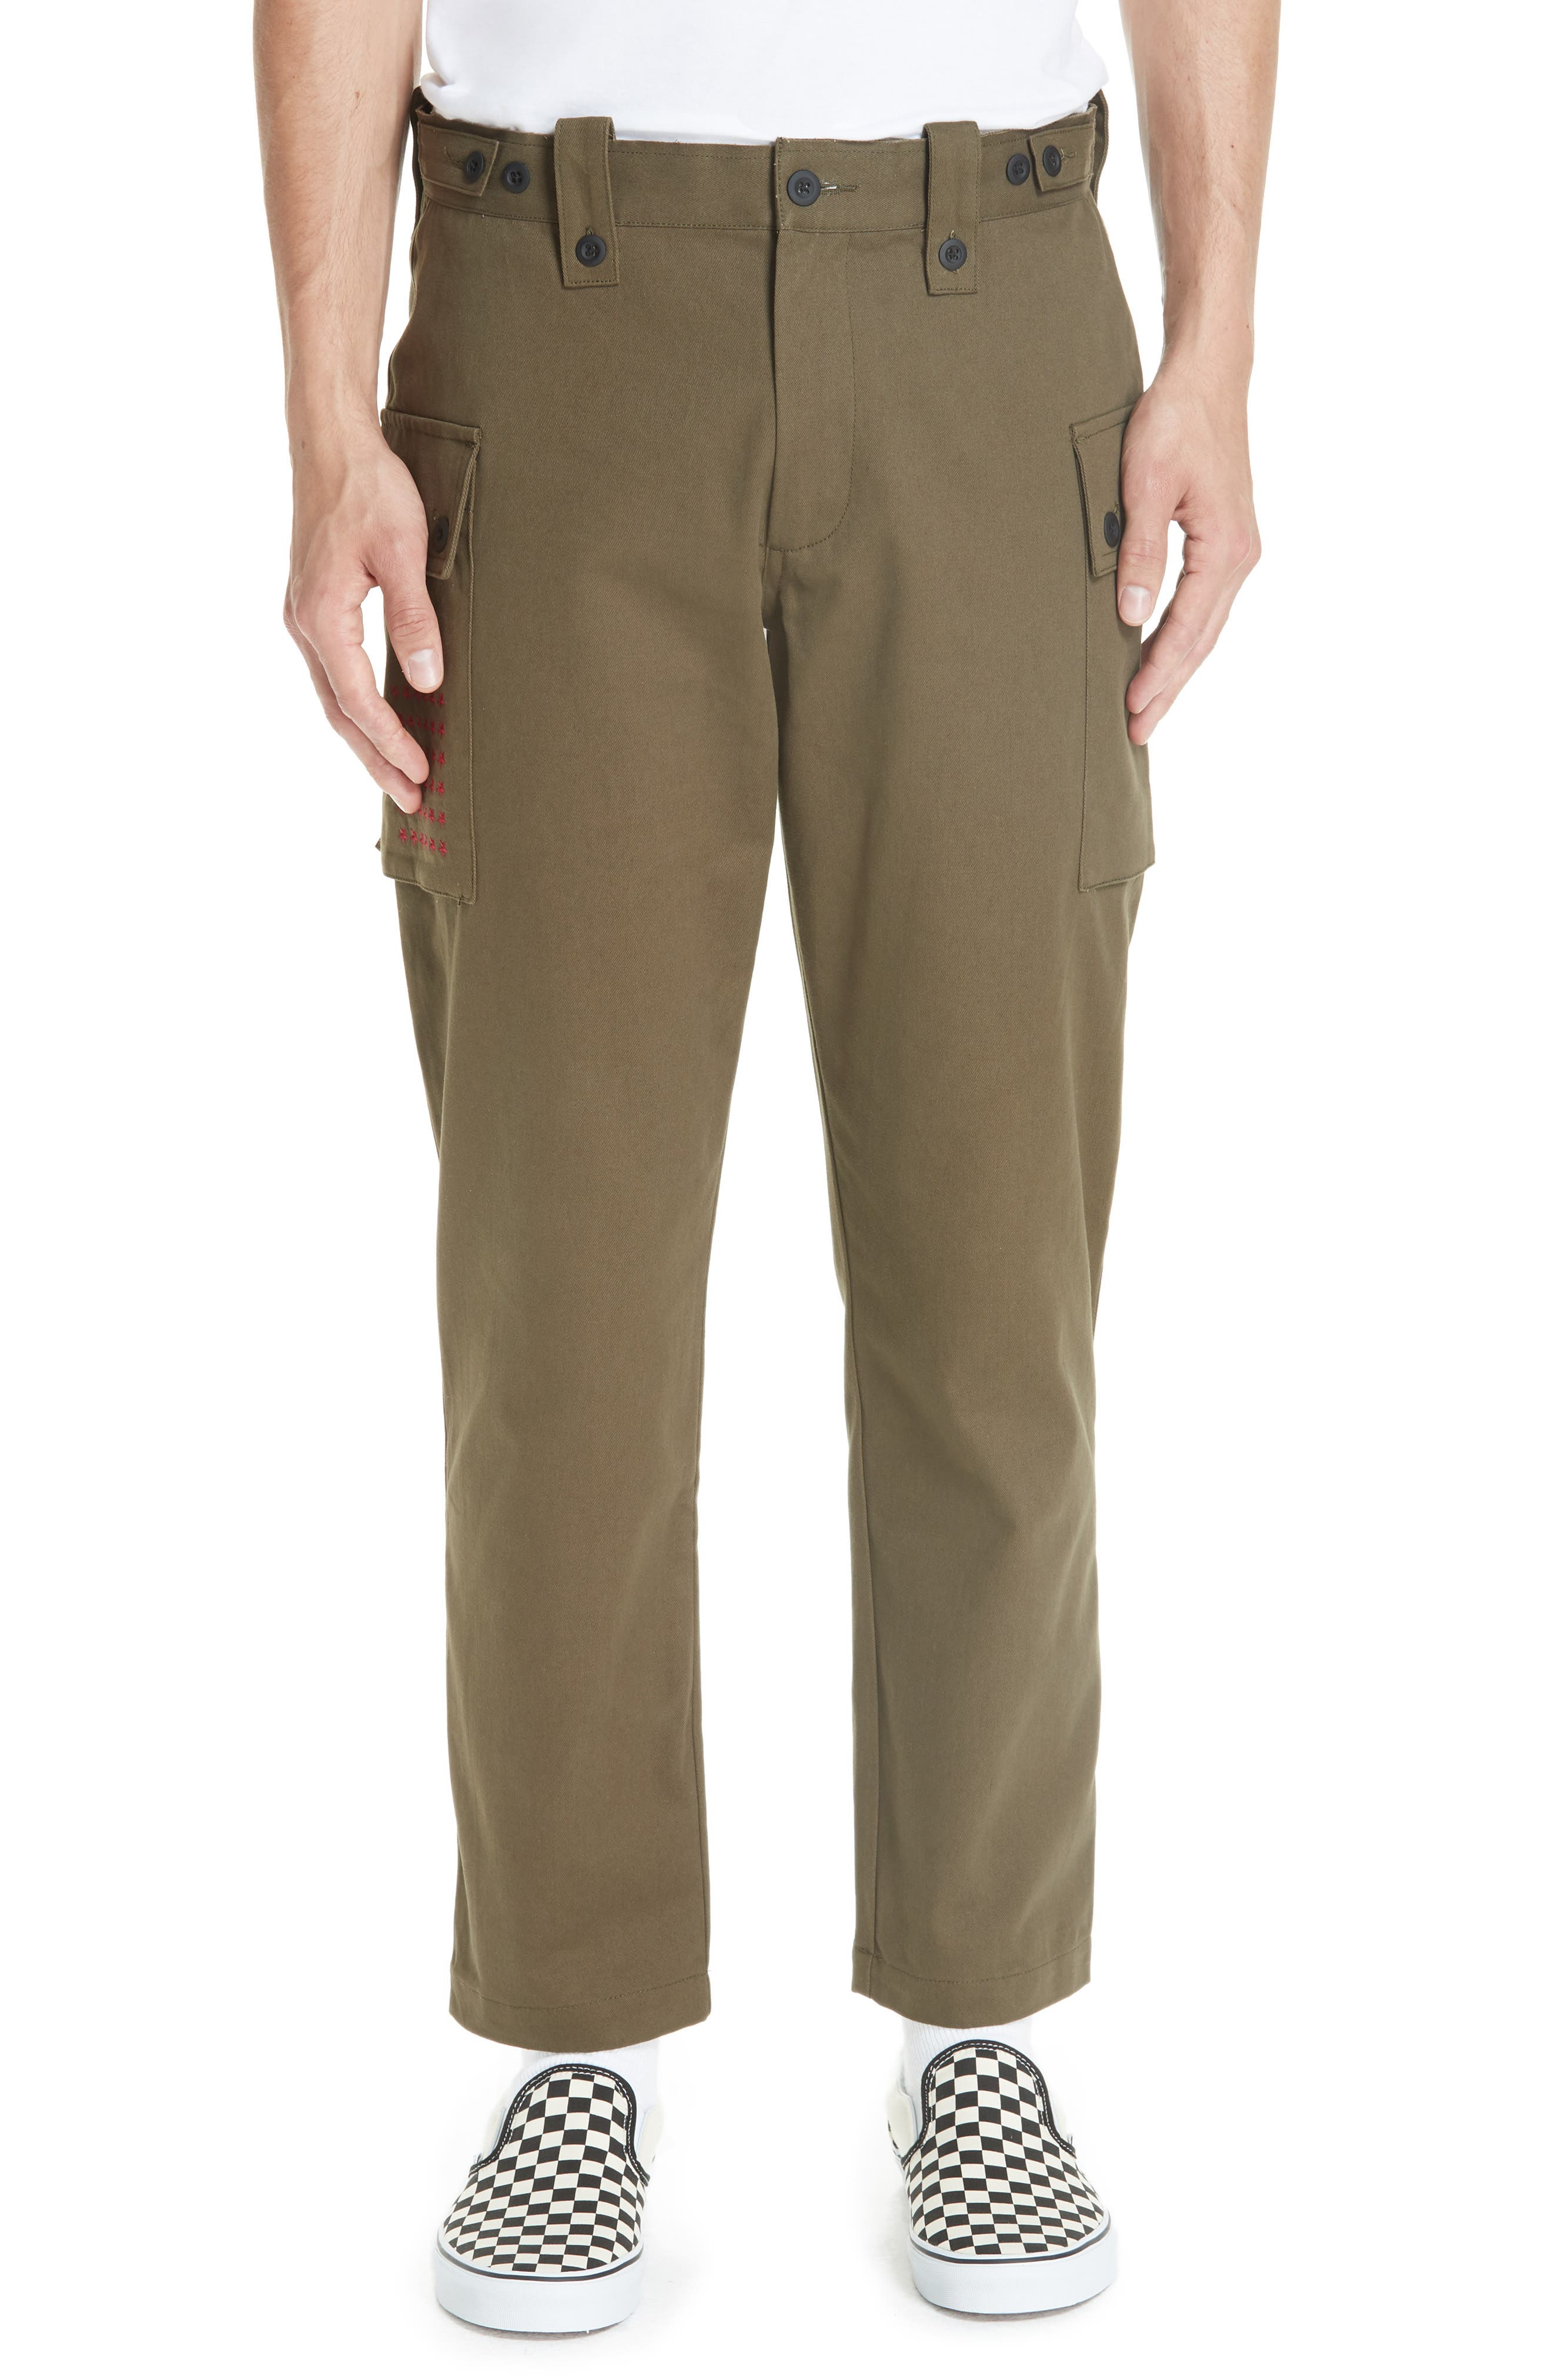 Ovadia & Sons Storm Utility Cargo Pants